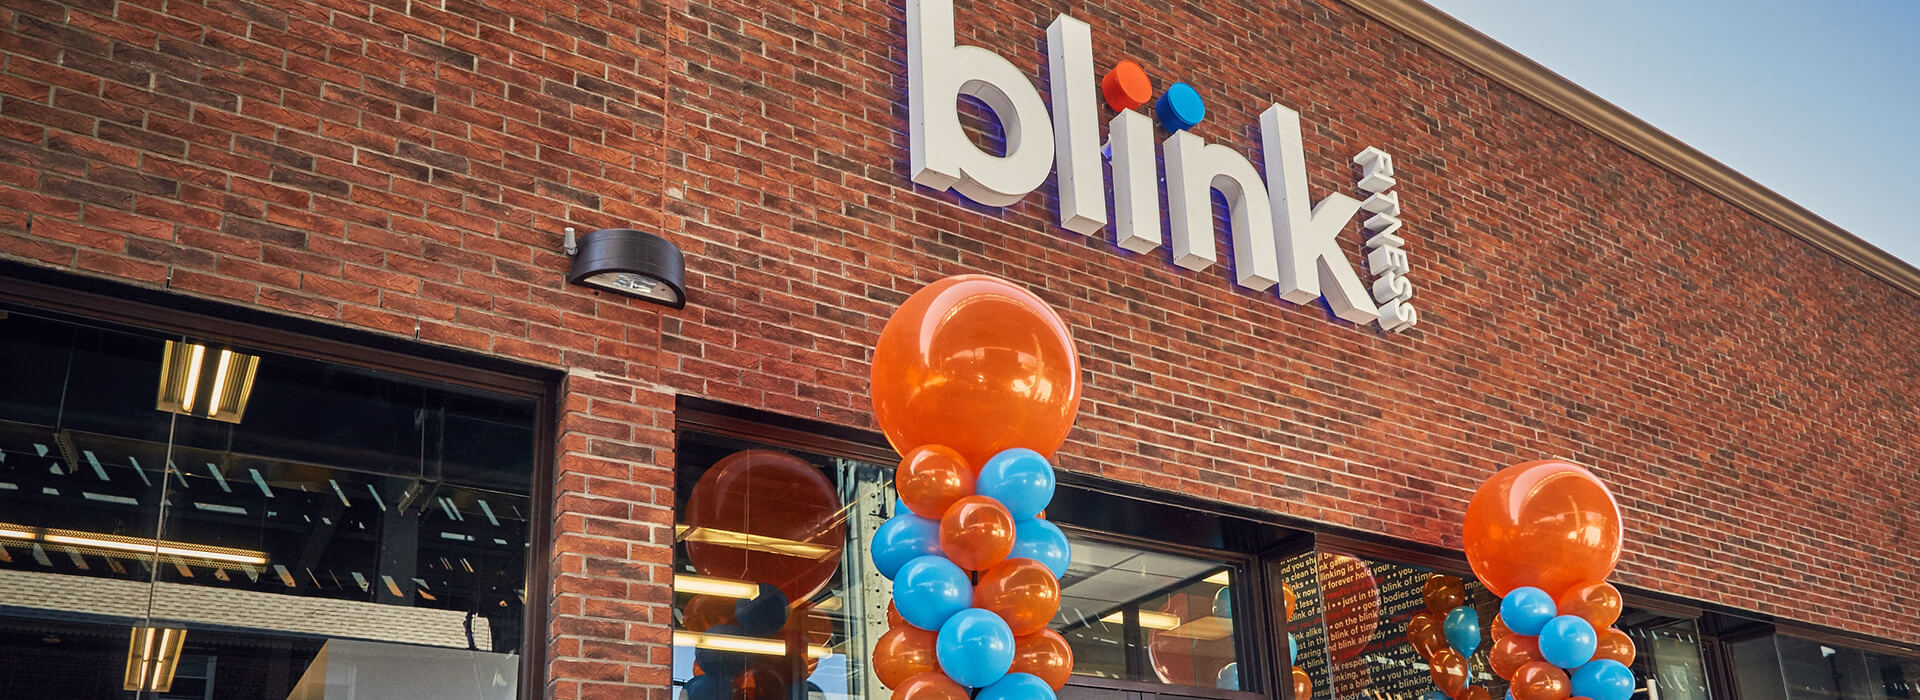 Blink Fitness exterior photo